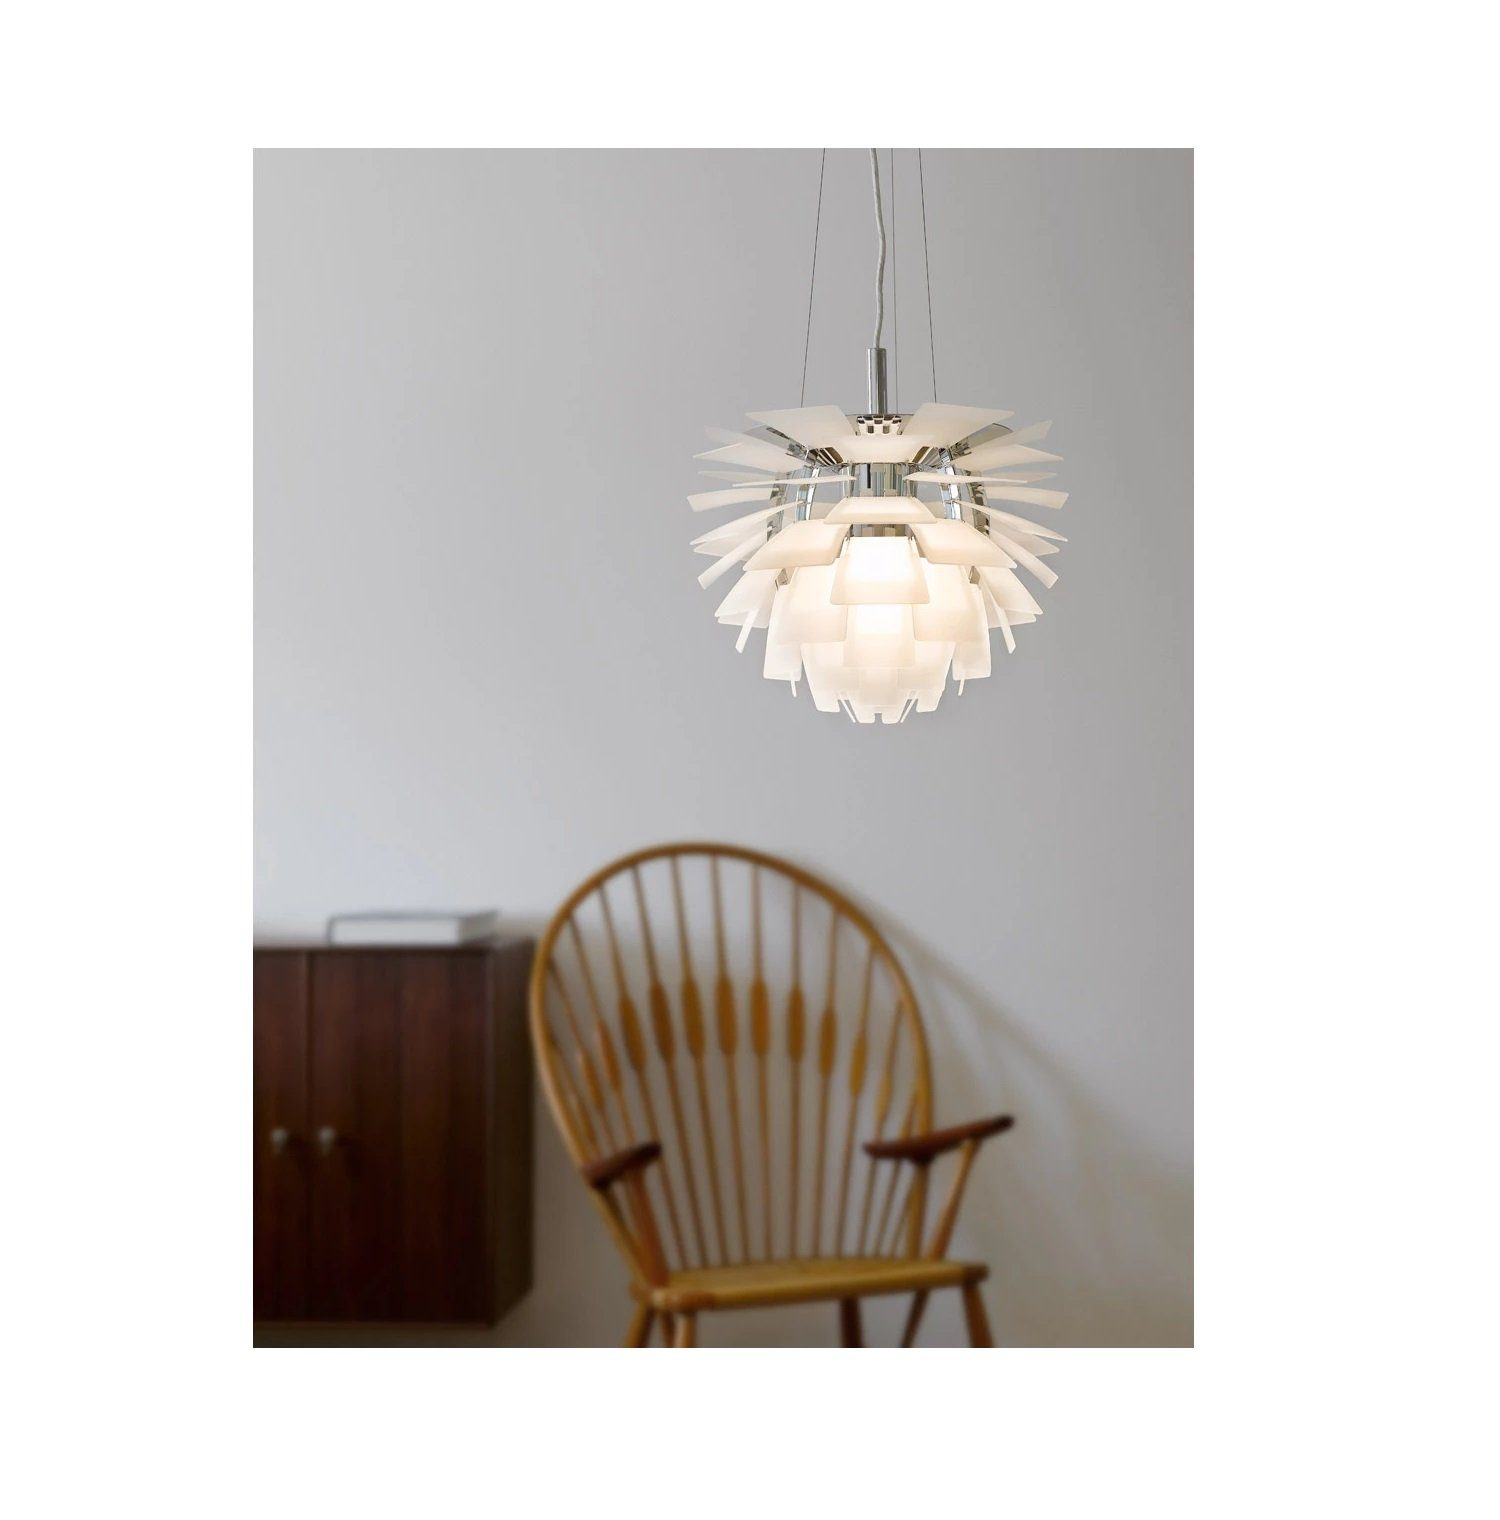 Louis Poulsen PH Artichoke Pendant - White Gloss Small